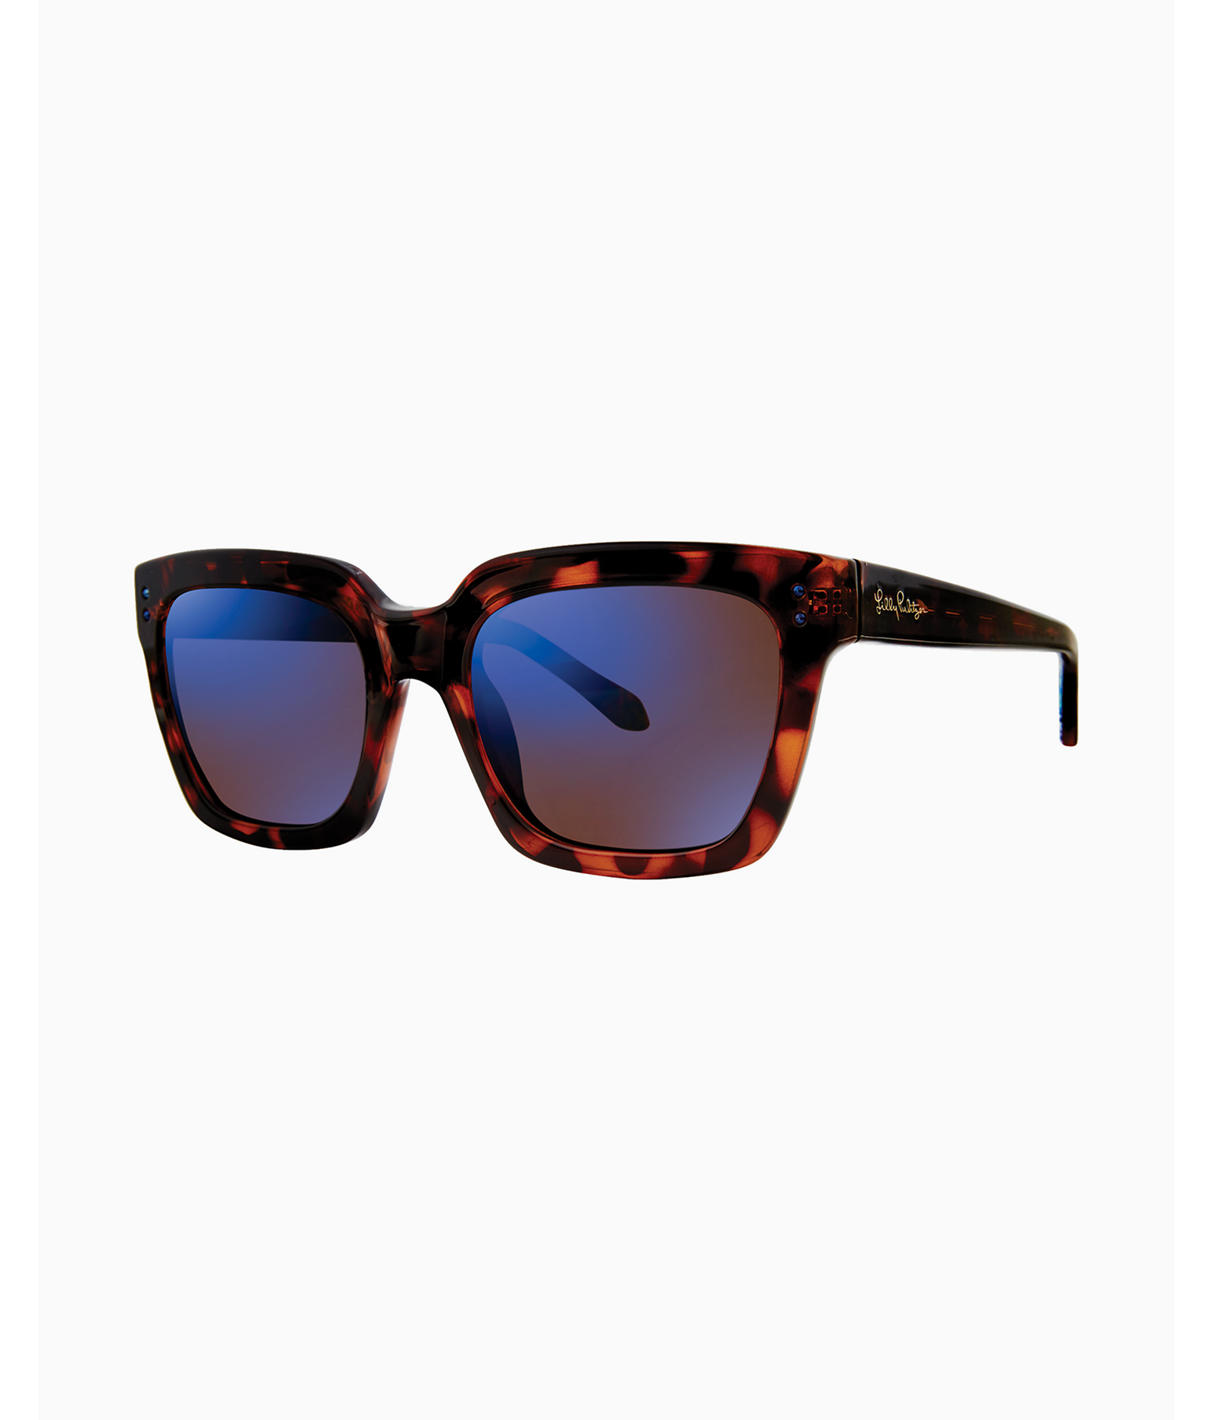 Lilly Pulitzer Lilly Pulitzer Celine Sunglasses